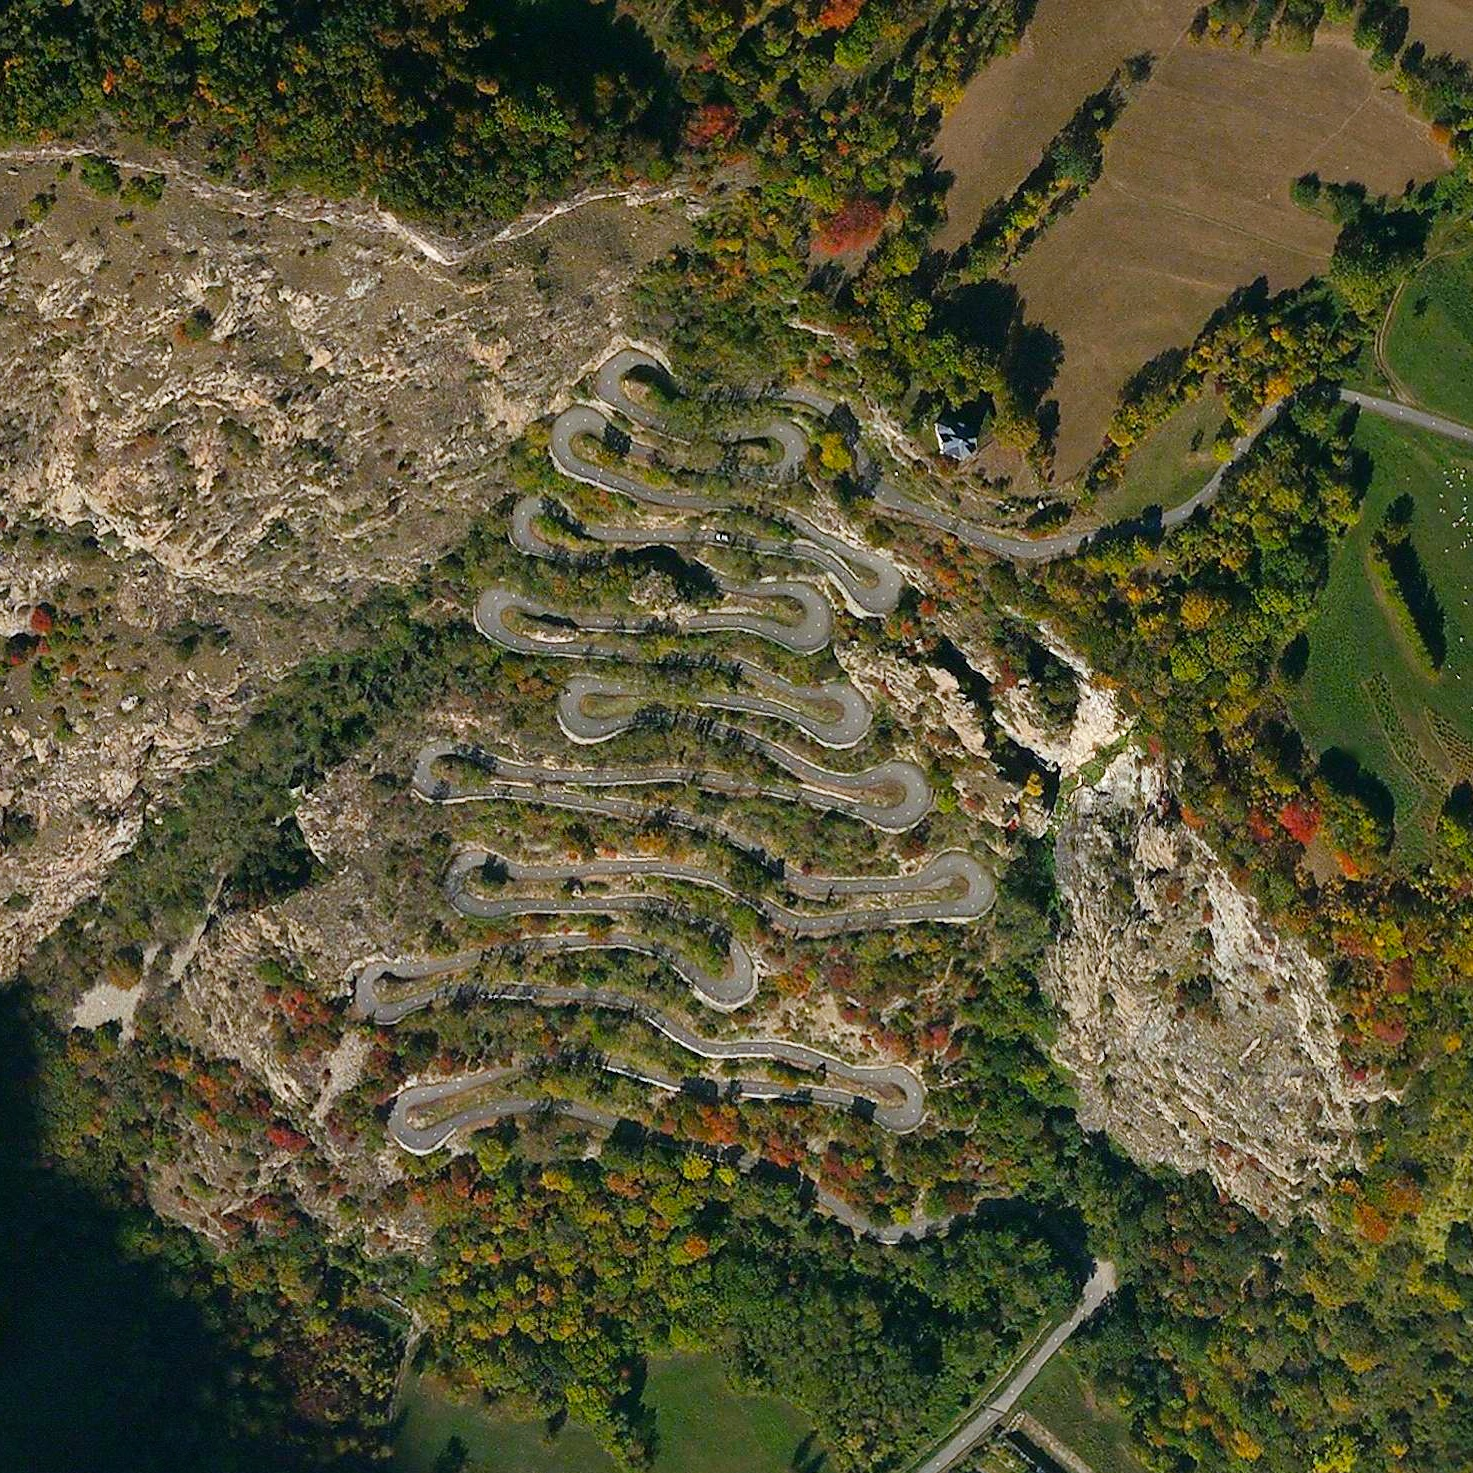 7/23/2015   Lacets de Montvernier   Montvernier, France  45.317959295°, 6.338567070°    Stage 18 of the Tour De France concluded today with the eighteen sweeping, hair-pin turns of the Lacets de Montvernier in Montvernier, France. The spectacular climb is 3.4 kilometers long and contains a switchback turn every 150 meters. Romain Bardet, competing in his home country, won the stage in just under five hours and four minutes while Chris Froome retains a lead of 3:10 with only three stages remaining before the finish in Paris.